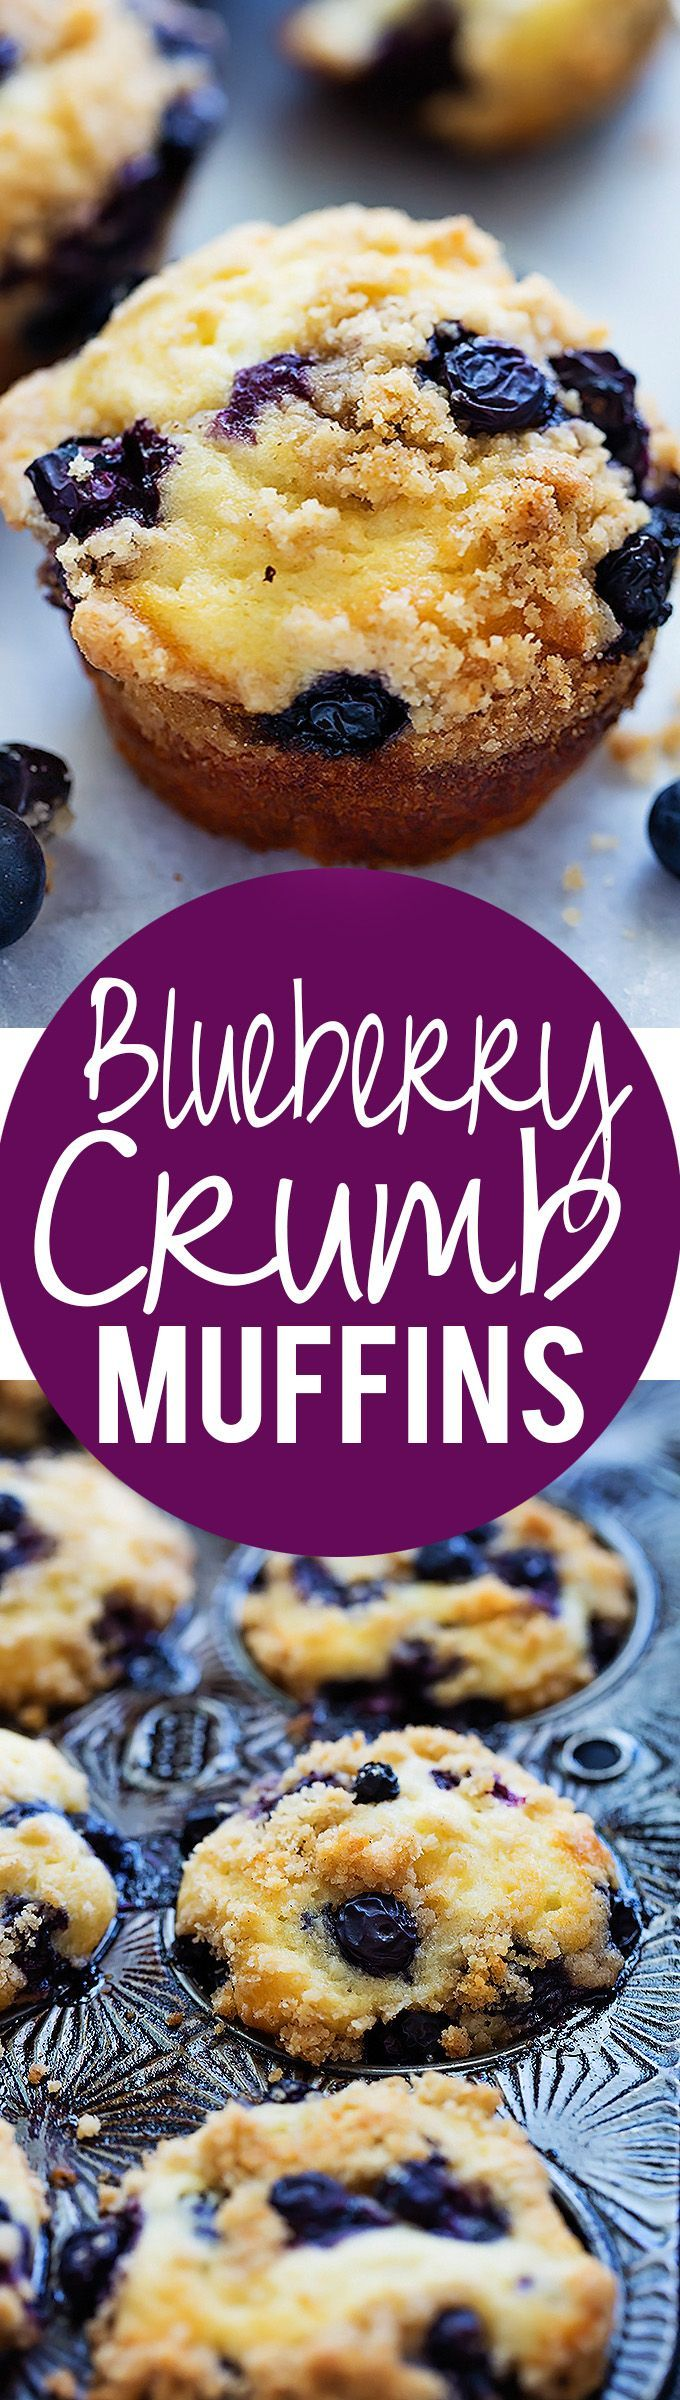 Blueberry Crumb Muffins - perfect, bakery-style super moist blueberry muffins made with GREEK YOGURT and a sweet and salty crumb topping!   Creme de la Crumb